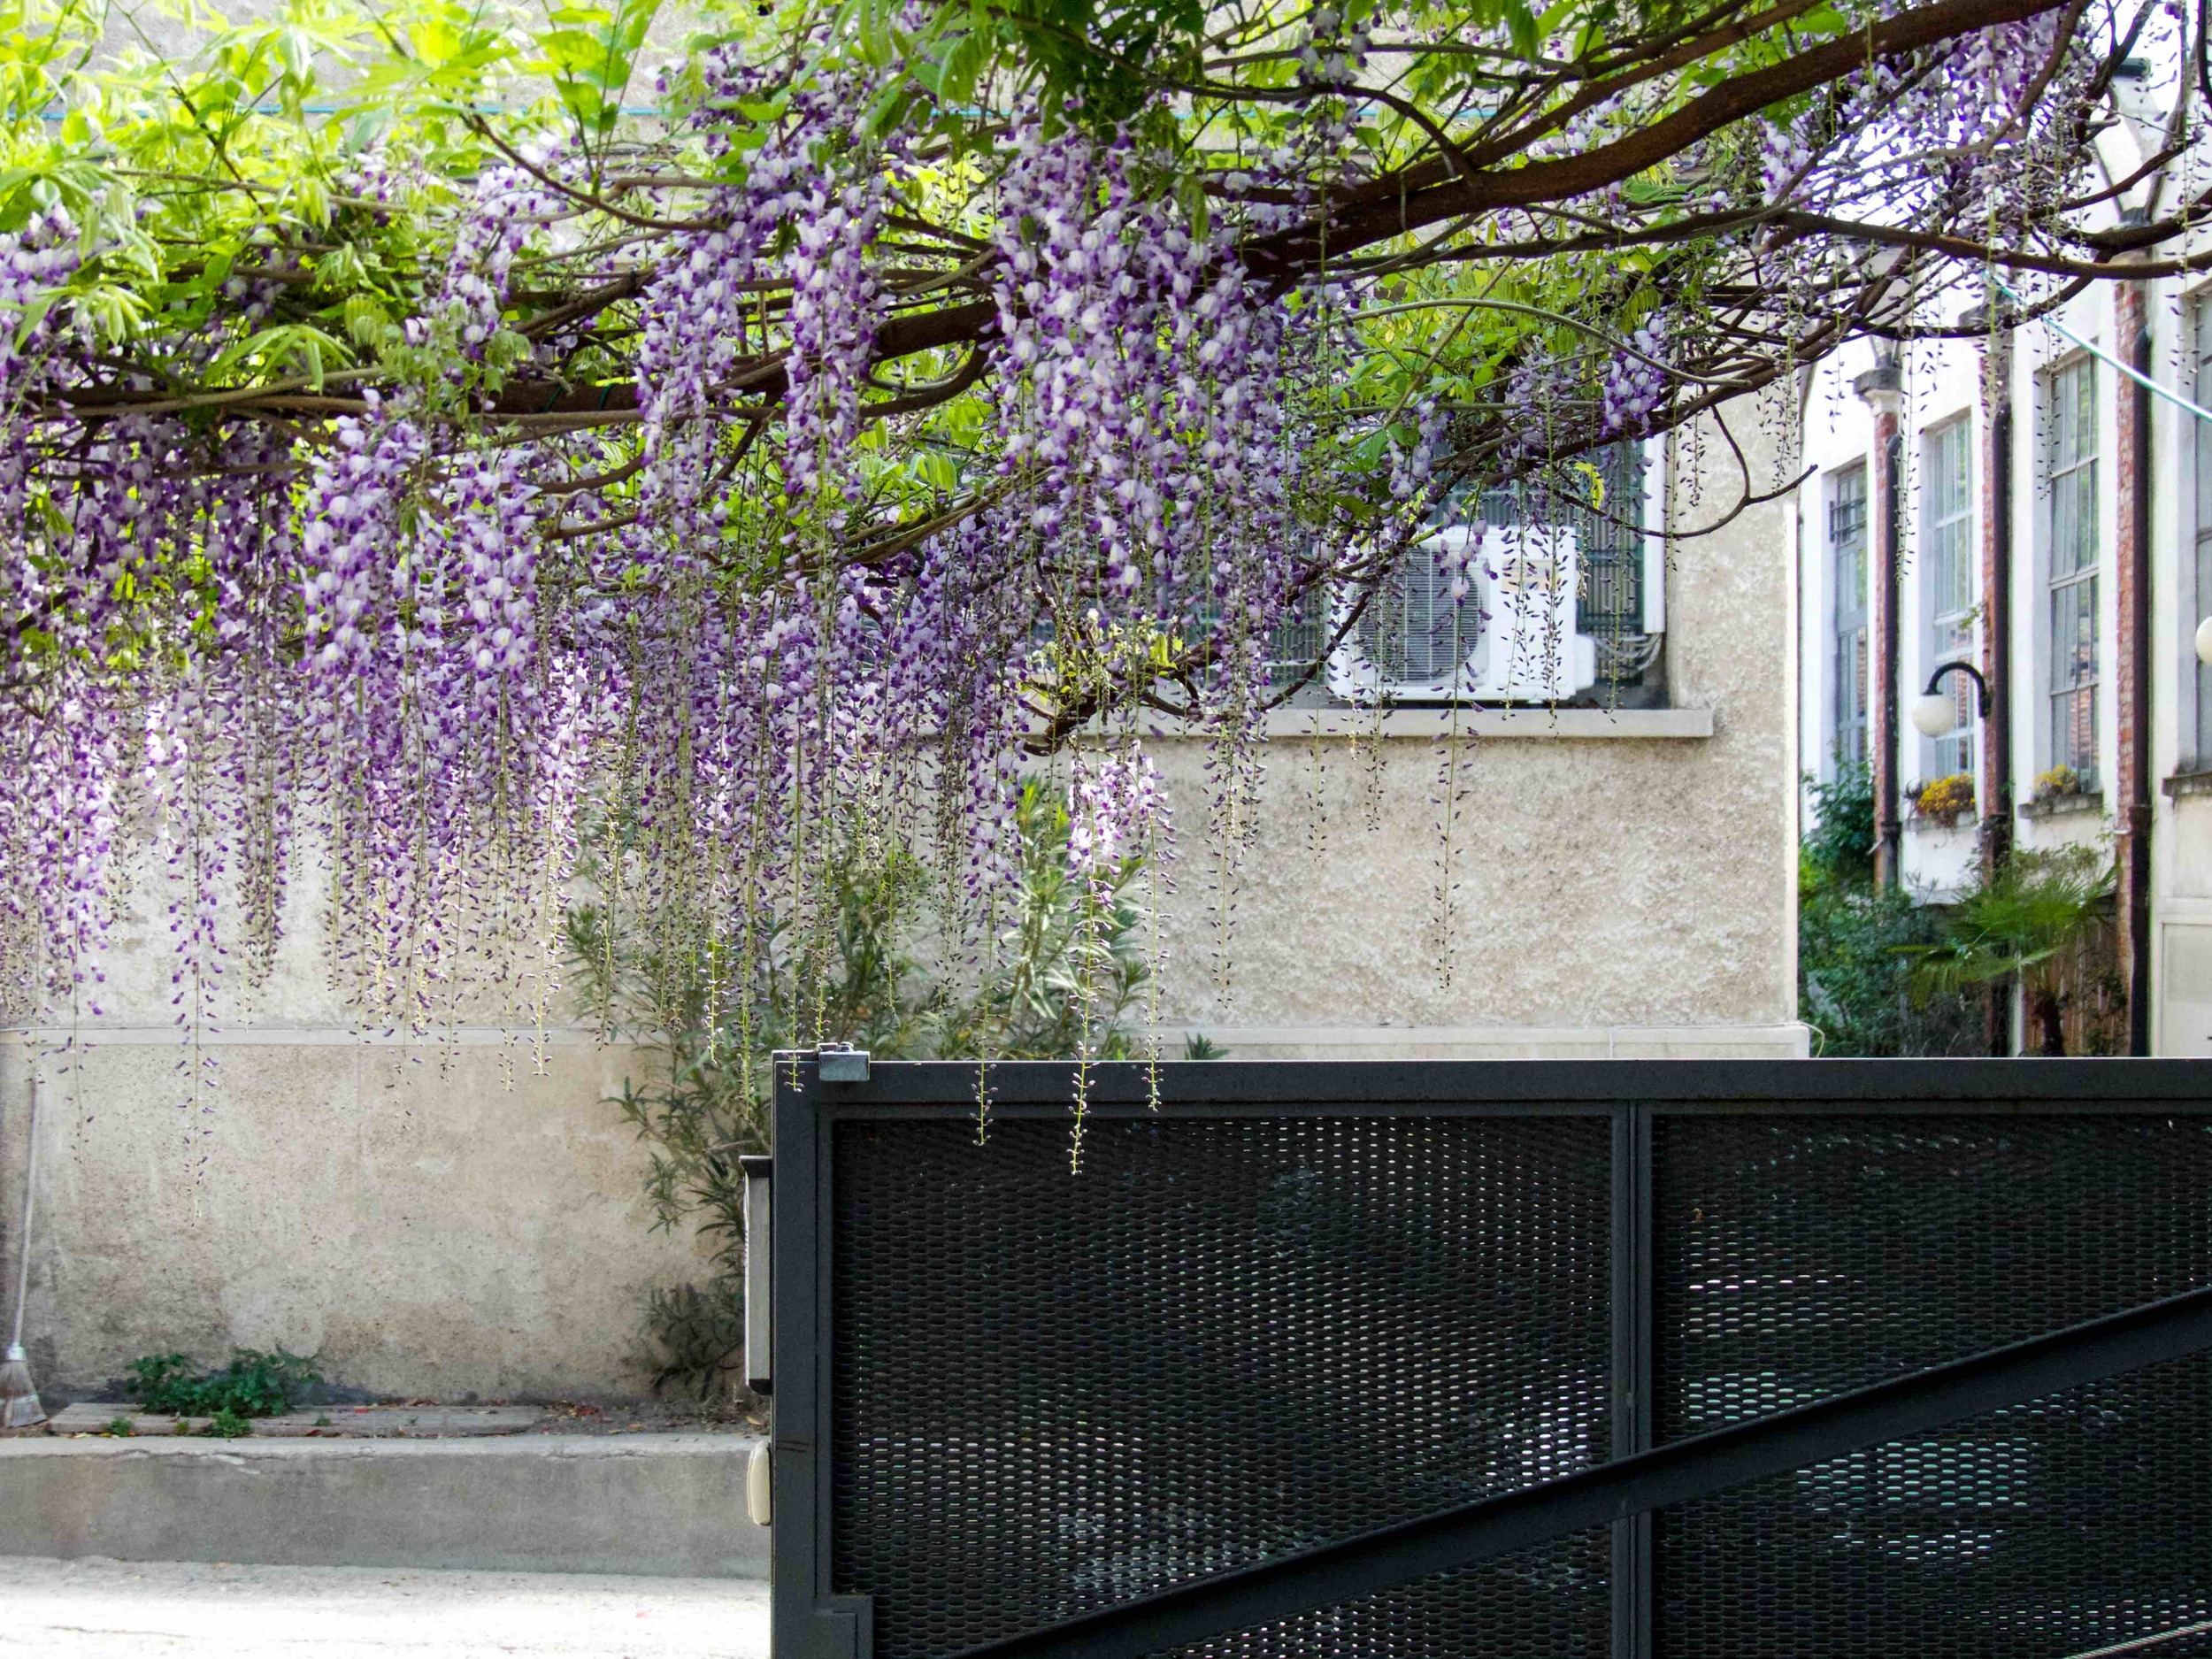 Spring in Milan is beautiful. I especially adore these flowers called Glicine. Not only they look amazing, they make the entire neighborhood smells heavenly, too.